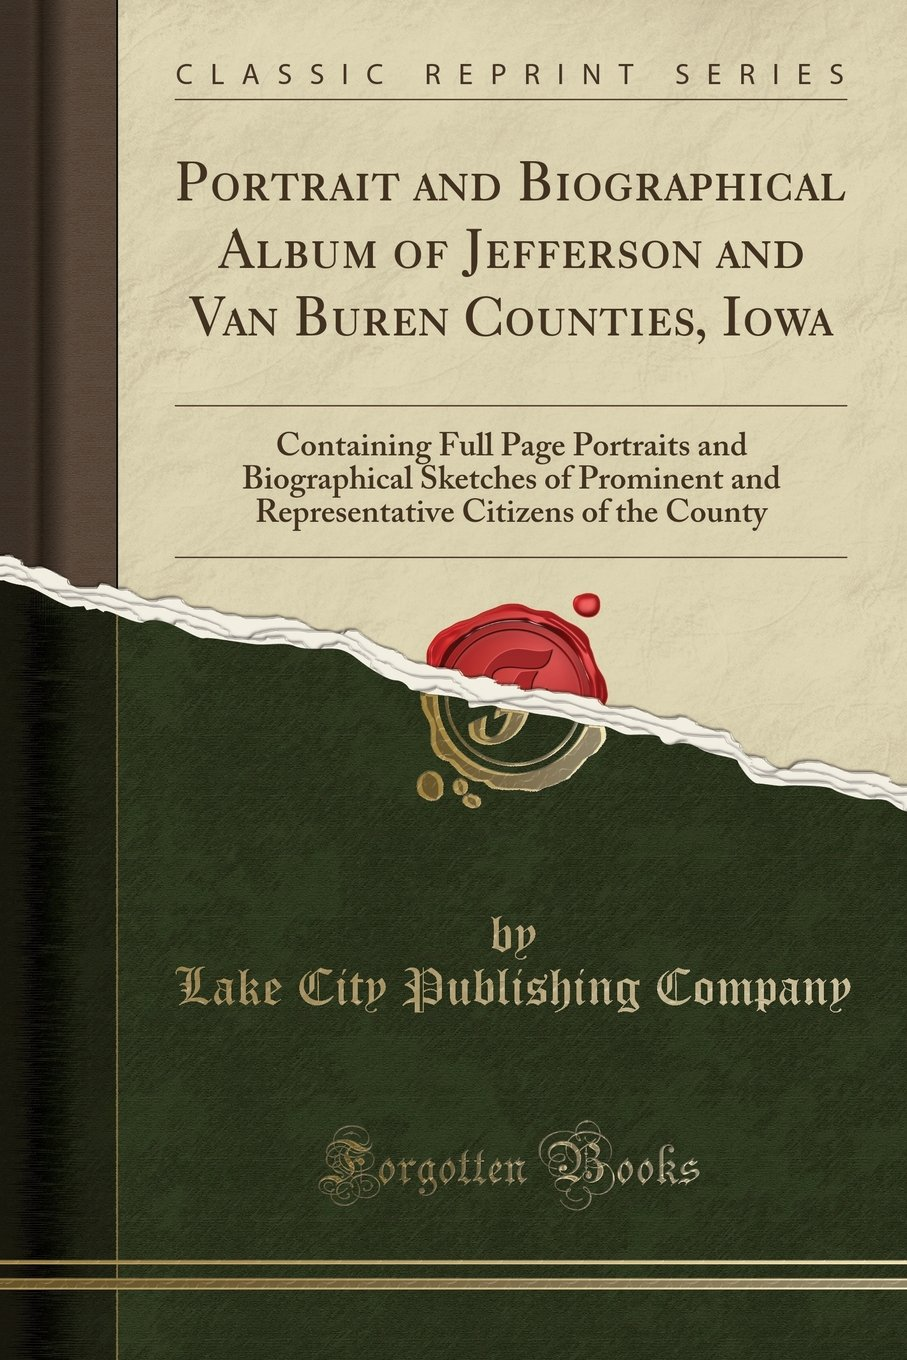 Portrait and Biographical Album of Jefferson and Van Buren Counties, Iowa: Containing Full Page Portraits and Biographical Sketches of Prominent and Citizens of the County (Classic Reprint)